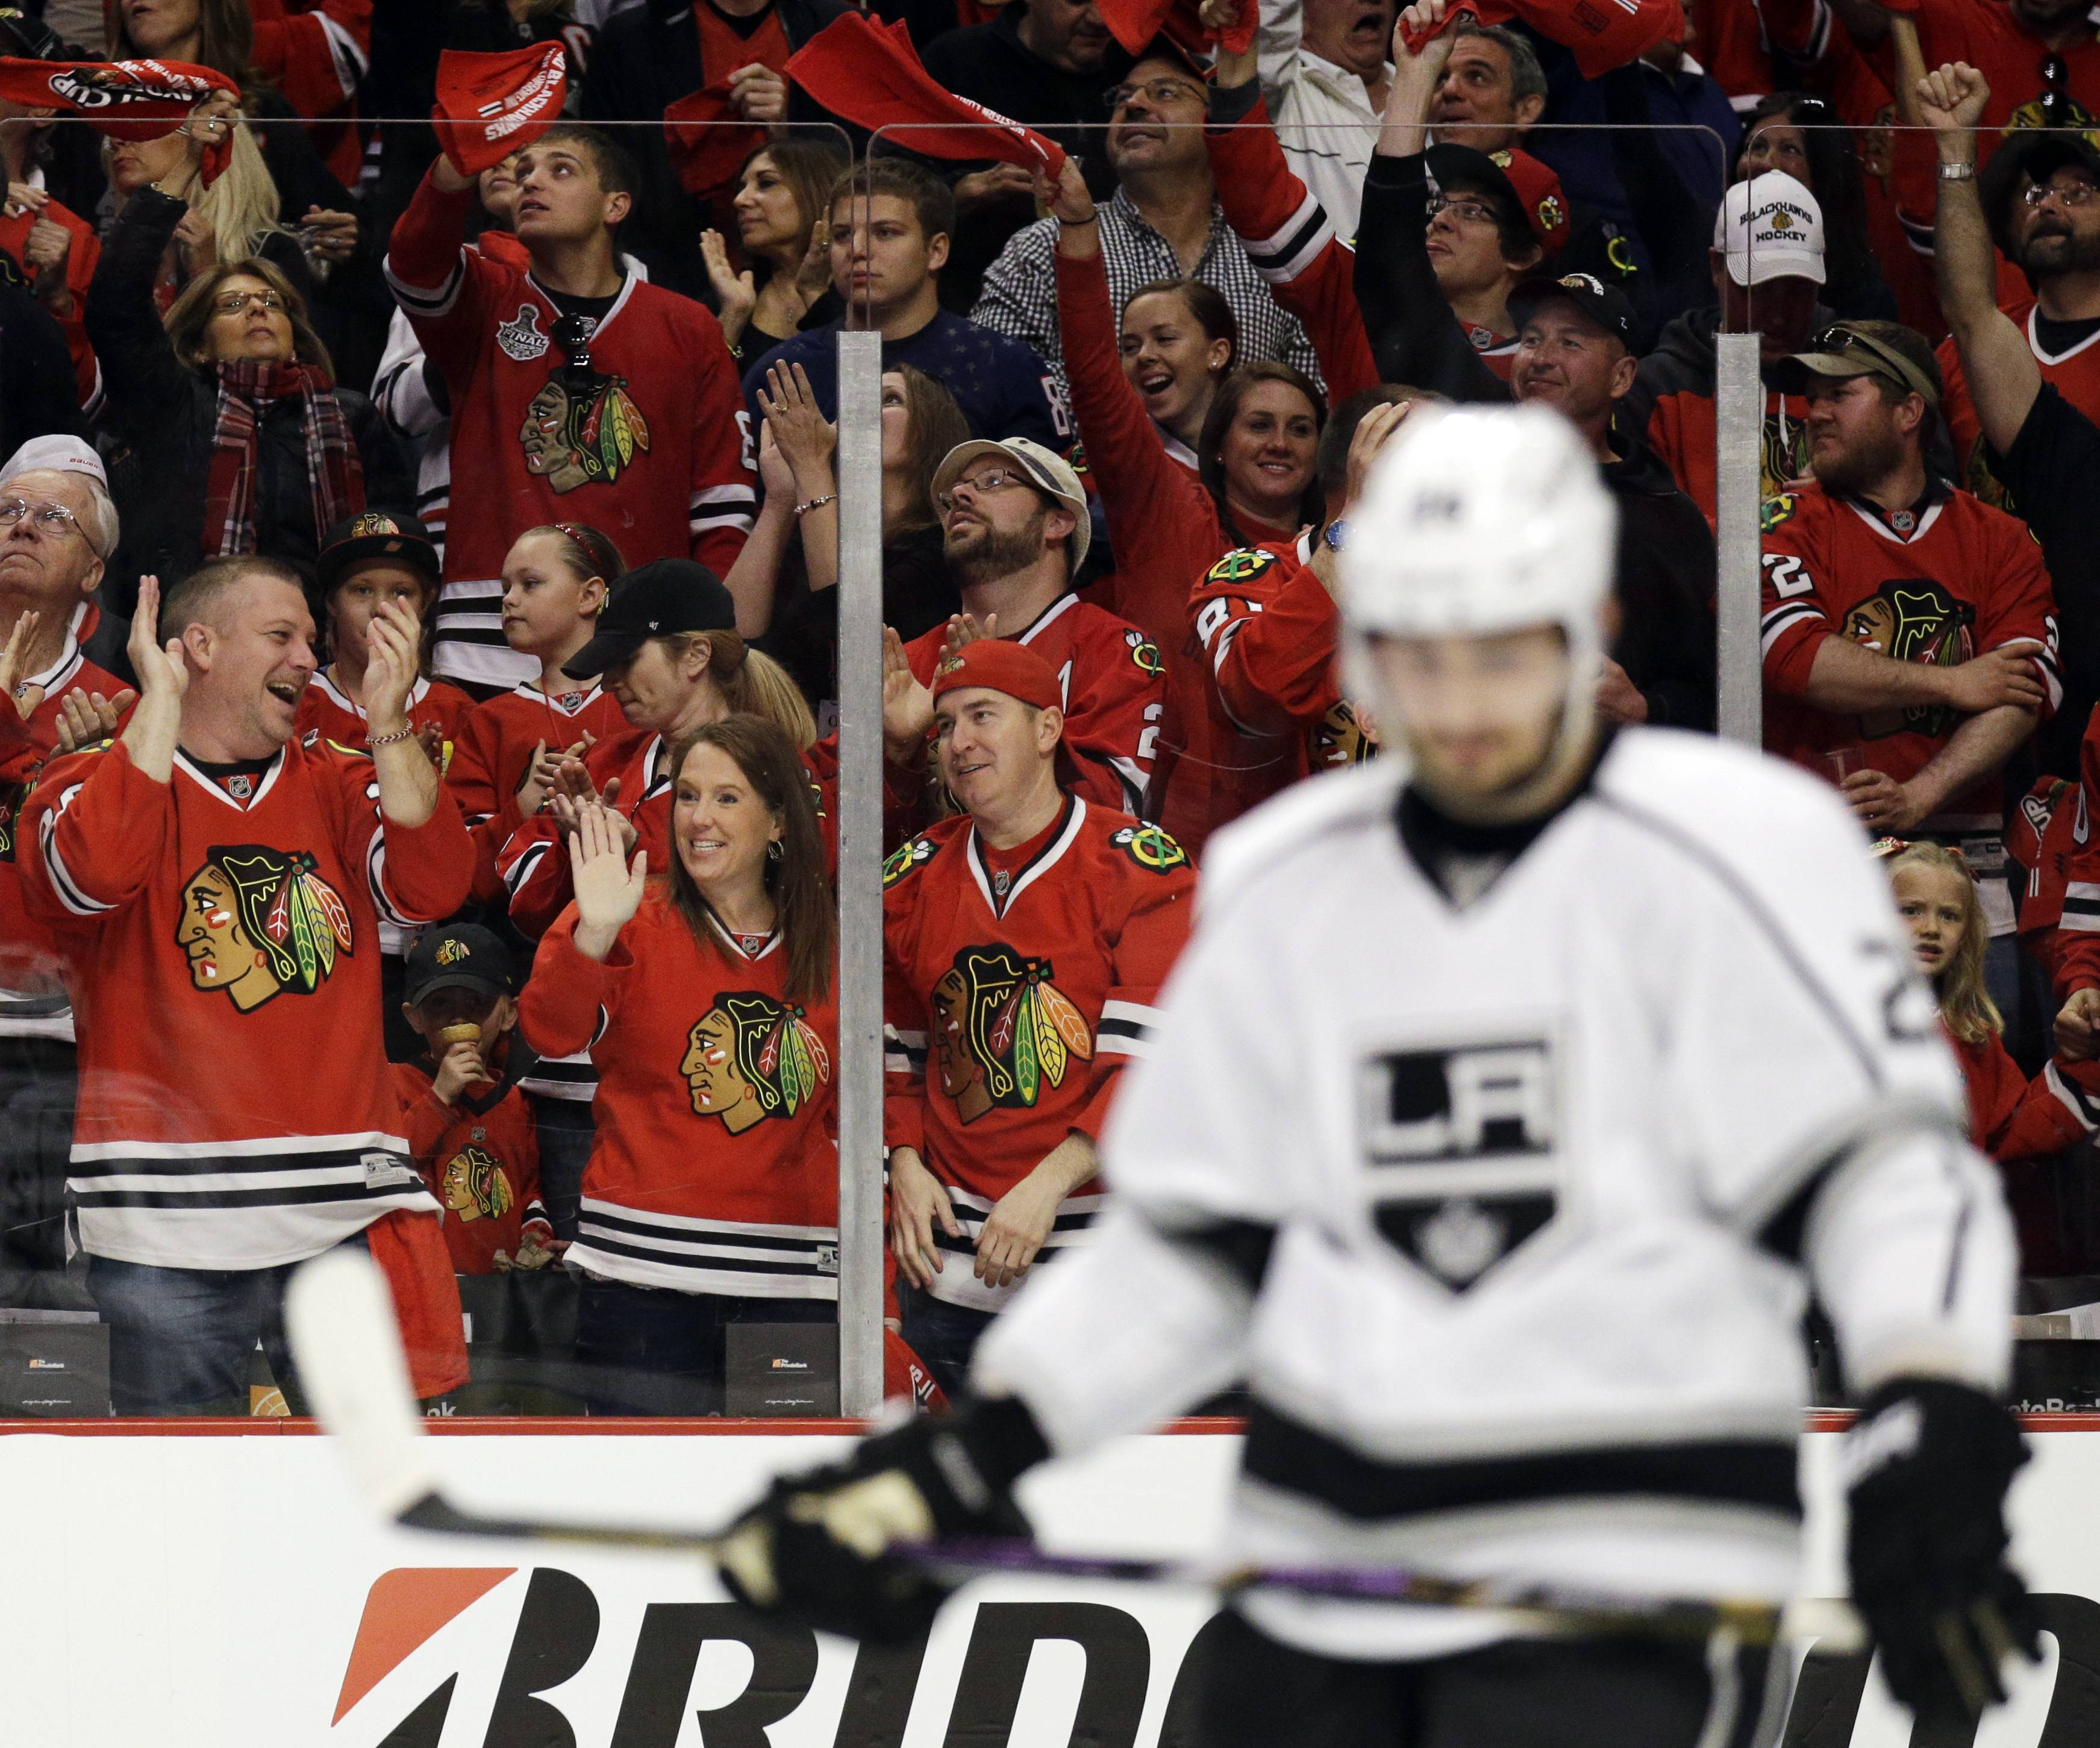 Chicago Blackhawks fans celebrates after Duncan Keith scored as Los Angeles Kings' Slava Voynov (26) looks down during the second period.